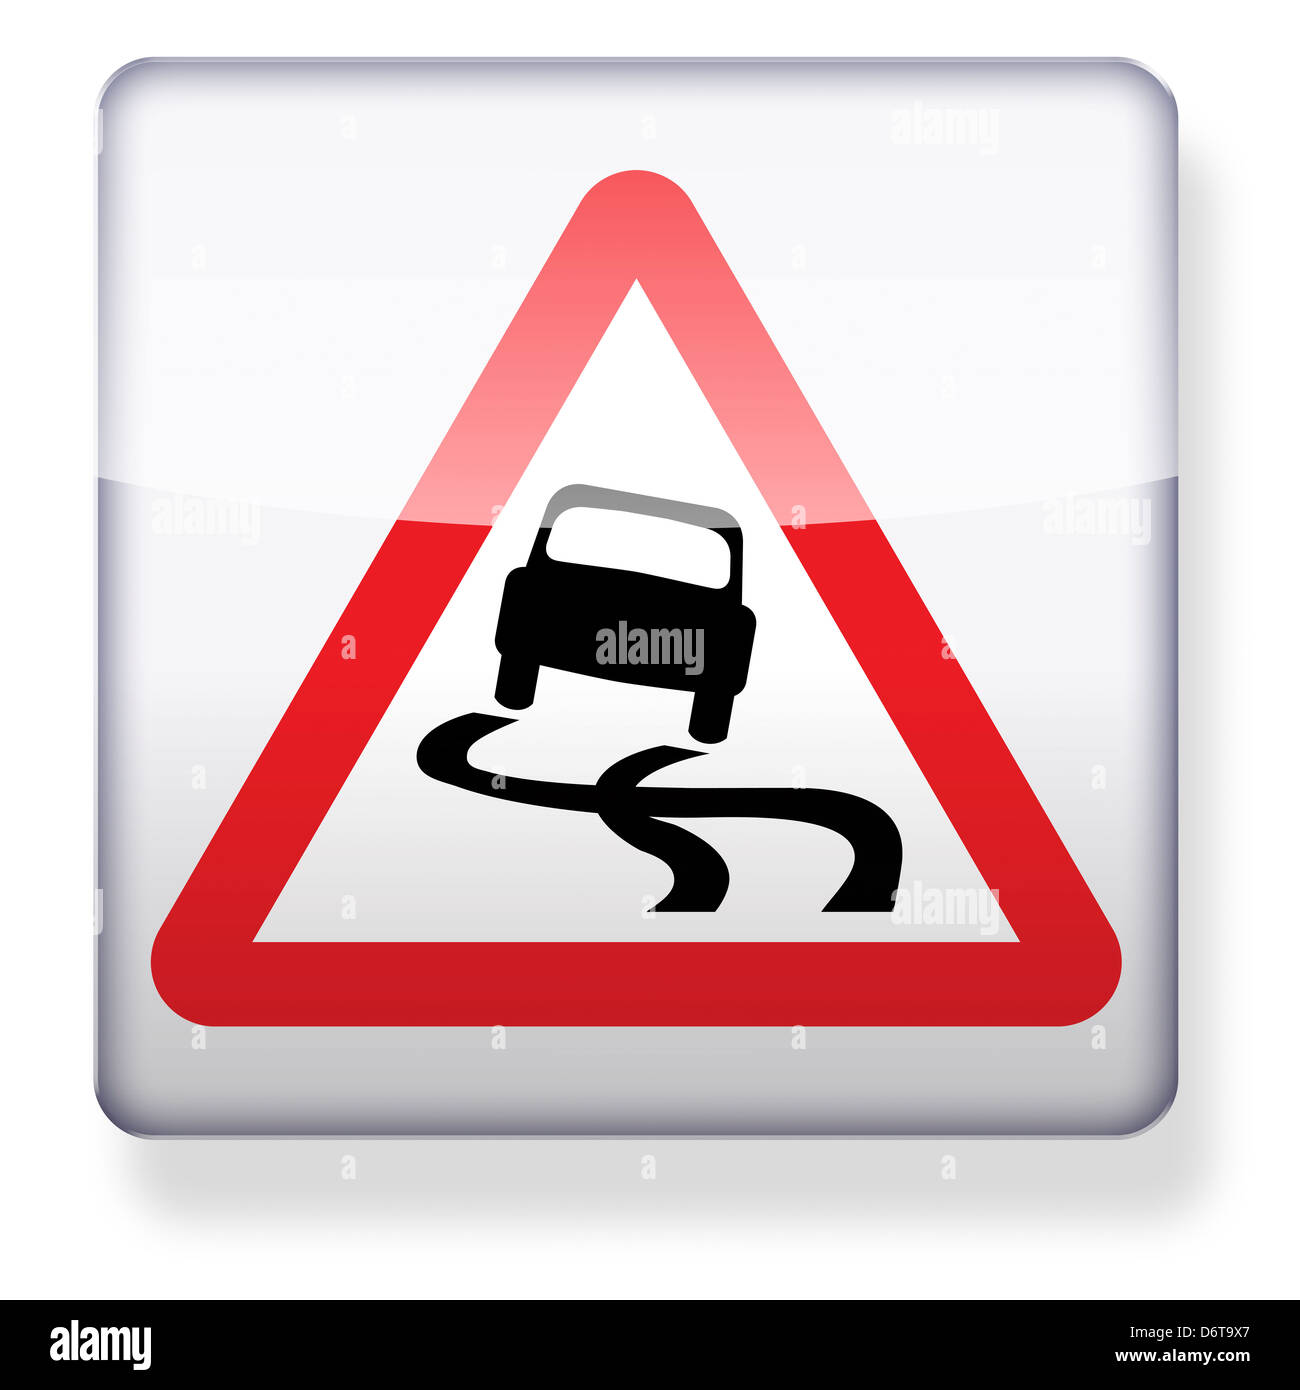 Slippery road sign as an app icon. Clipping path included. - Stock Image